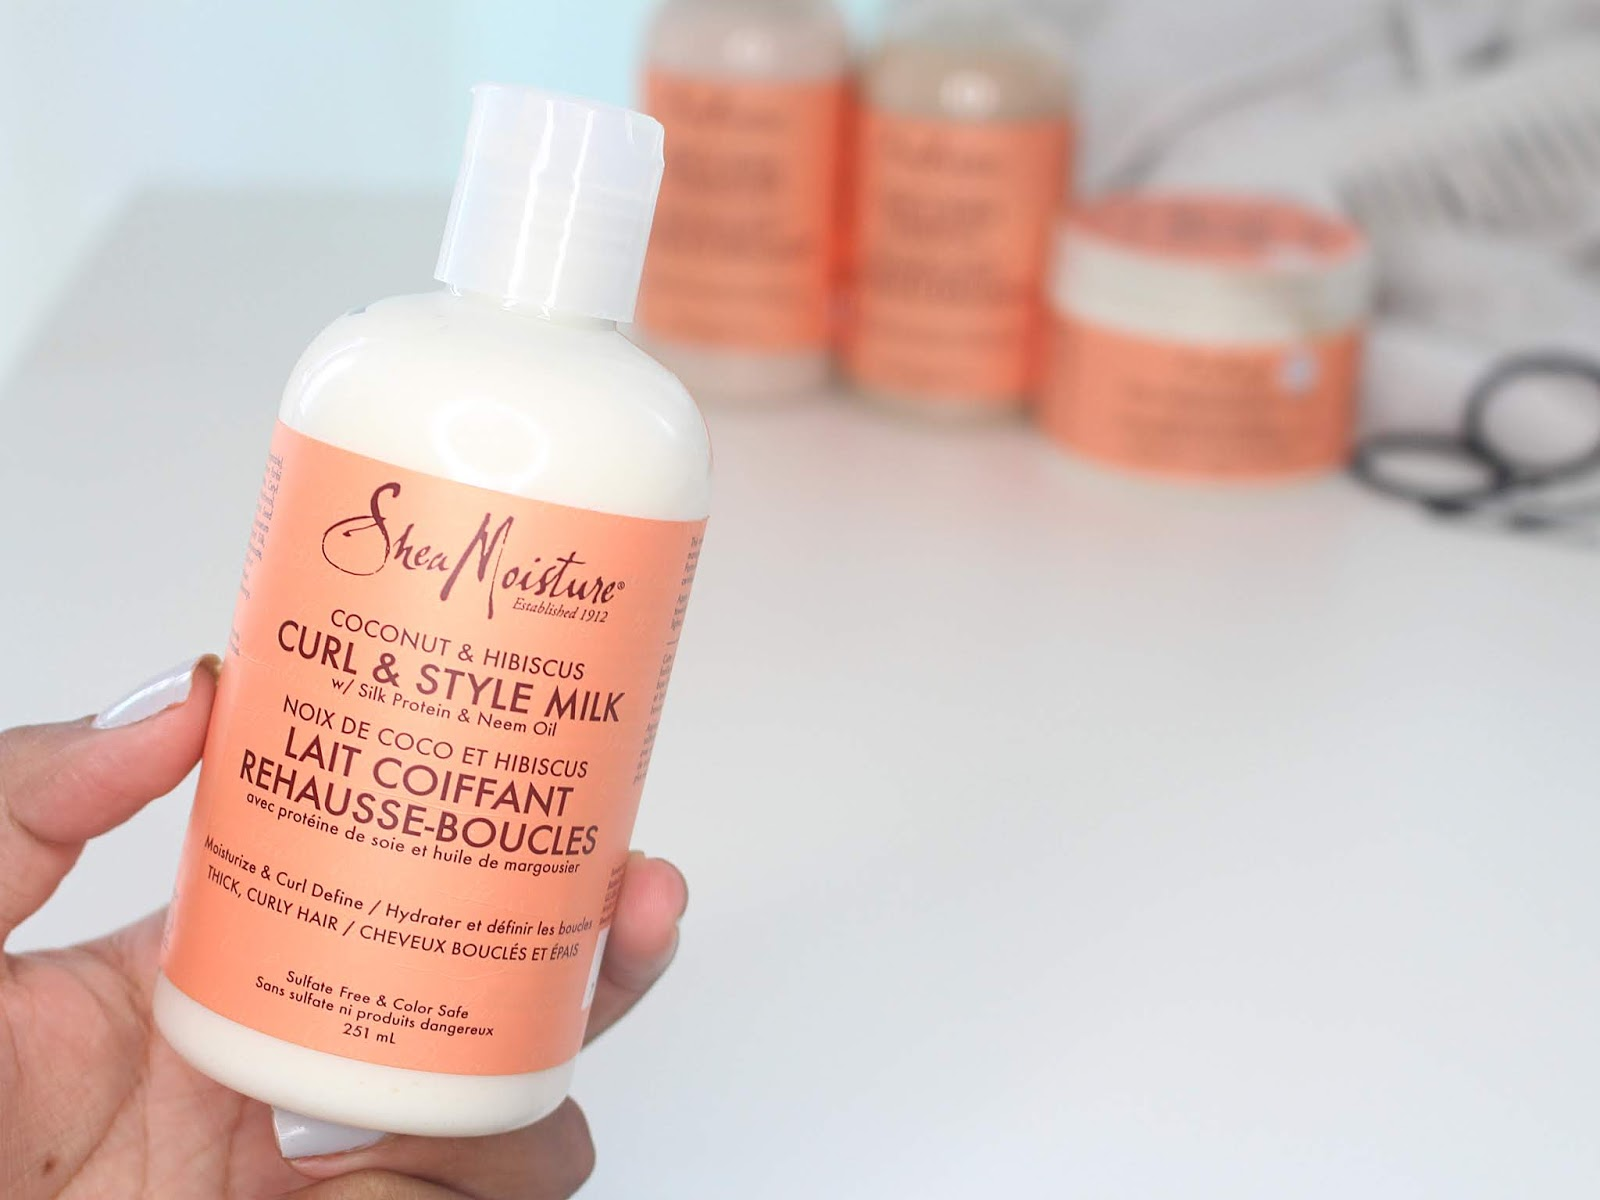 Shea Moisture Coconut and Hibiscus Style Milk